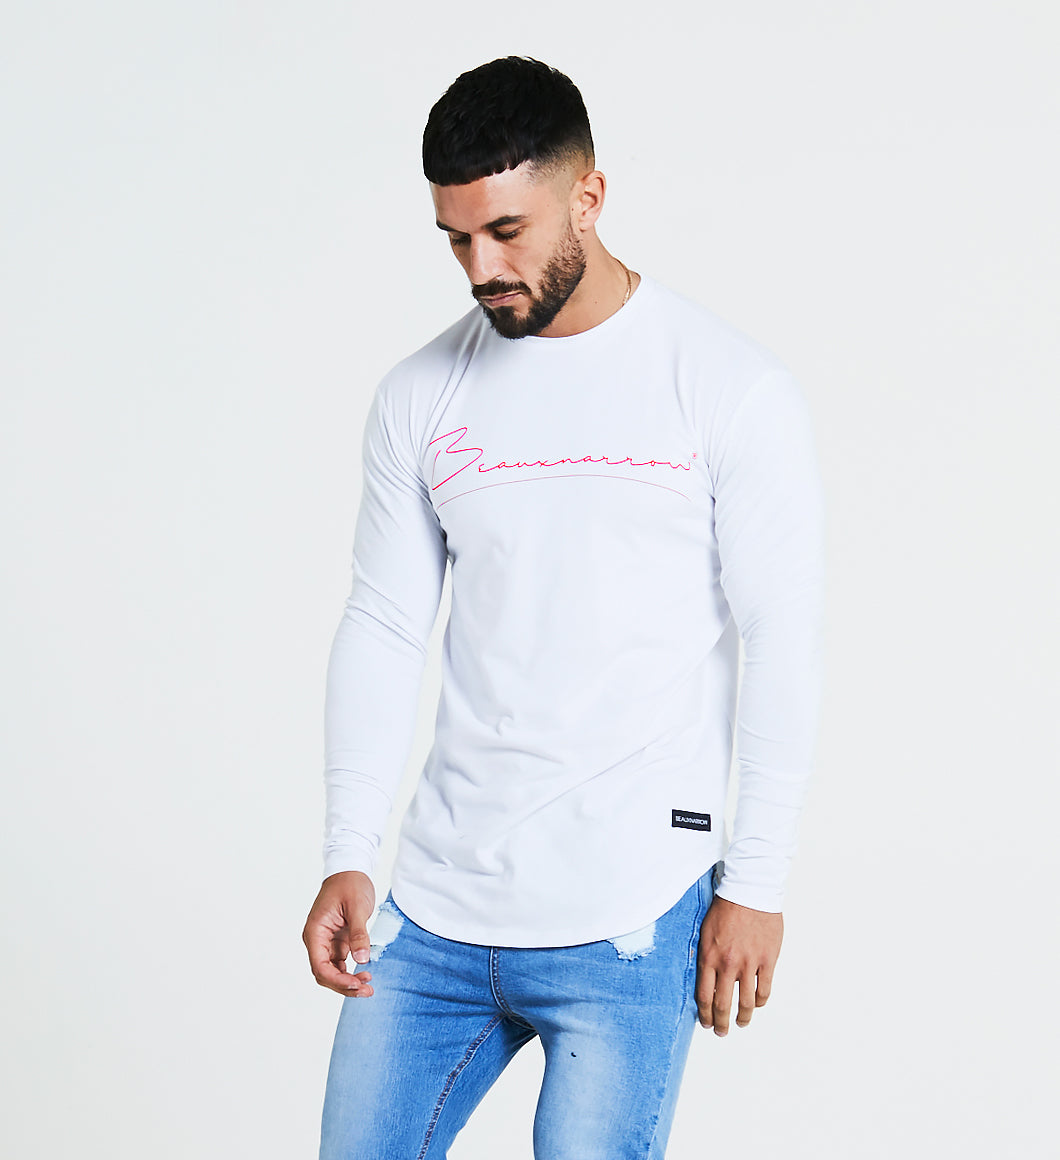 BEAUXNARROW SIGNATURE LOGO L/S T-SHIRT - WHITE/RED